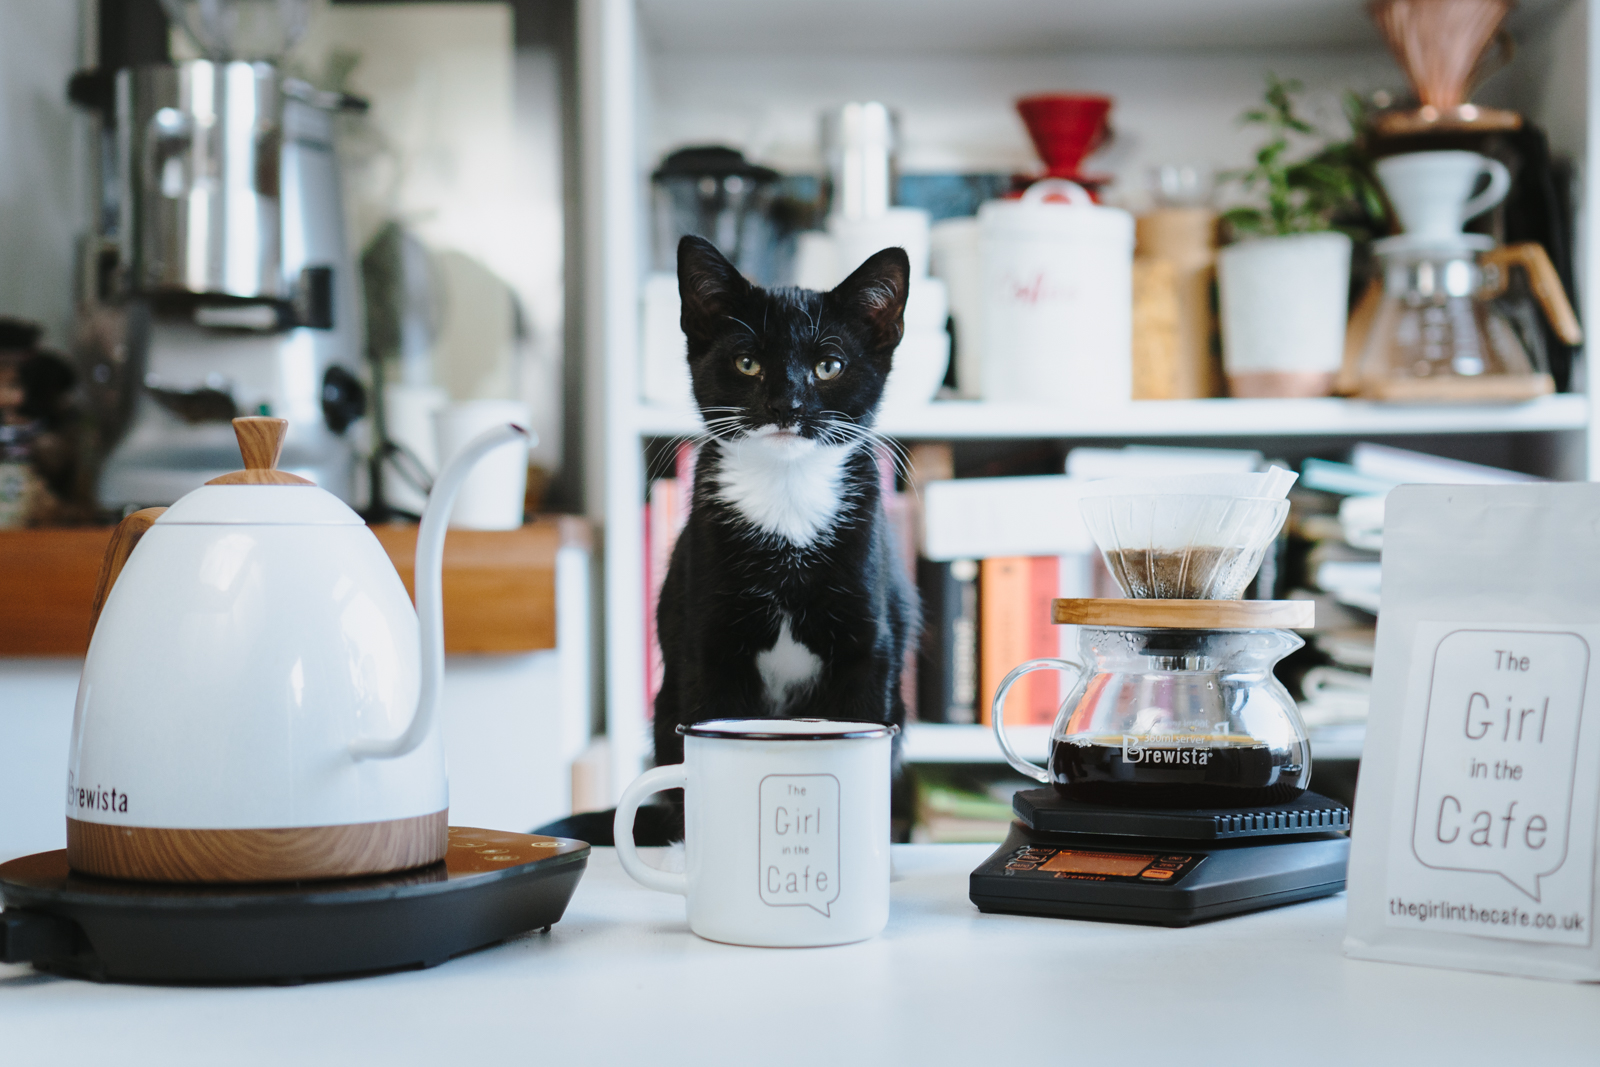 My kitten   Macchiato   (mostly black with a touch of white) and serious about coffee!  Photo by his awesome Aunty  Zsuzsa Zicho!